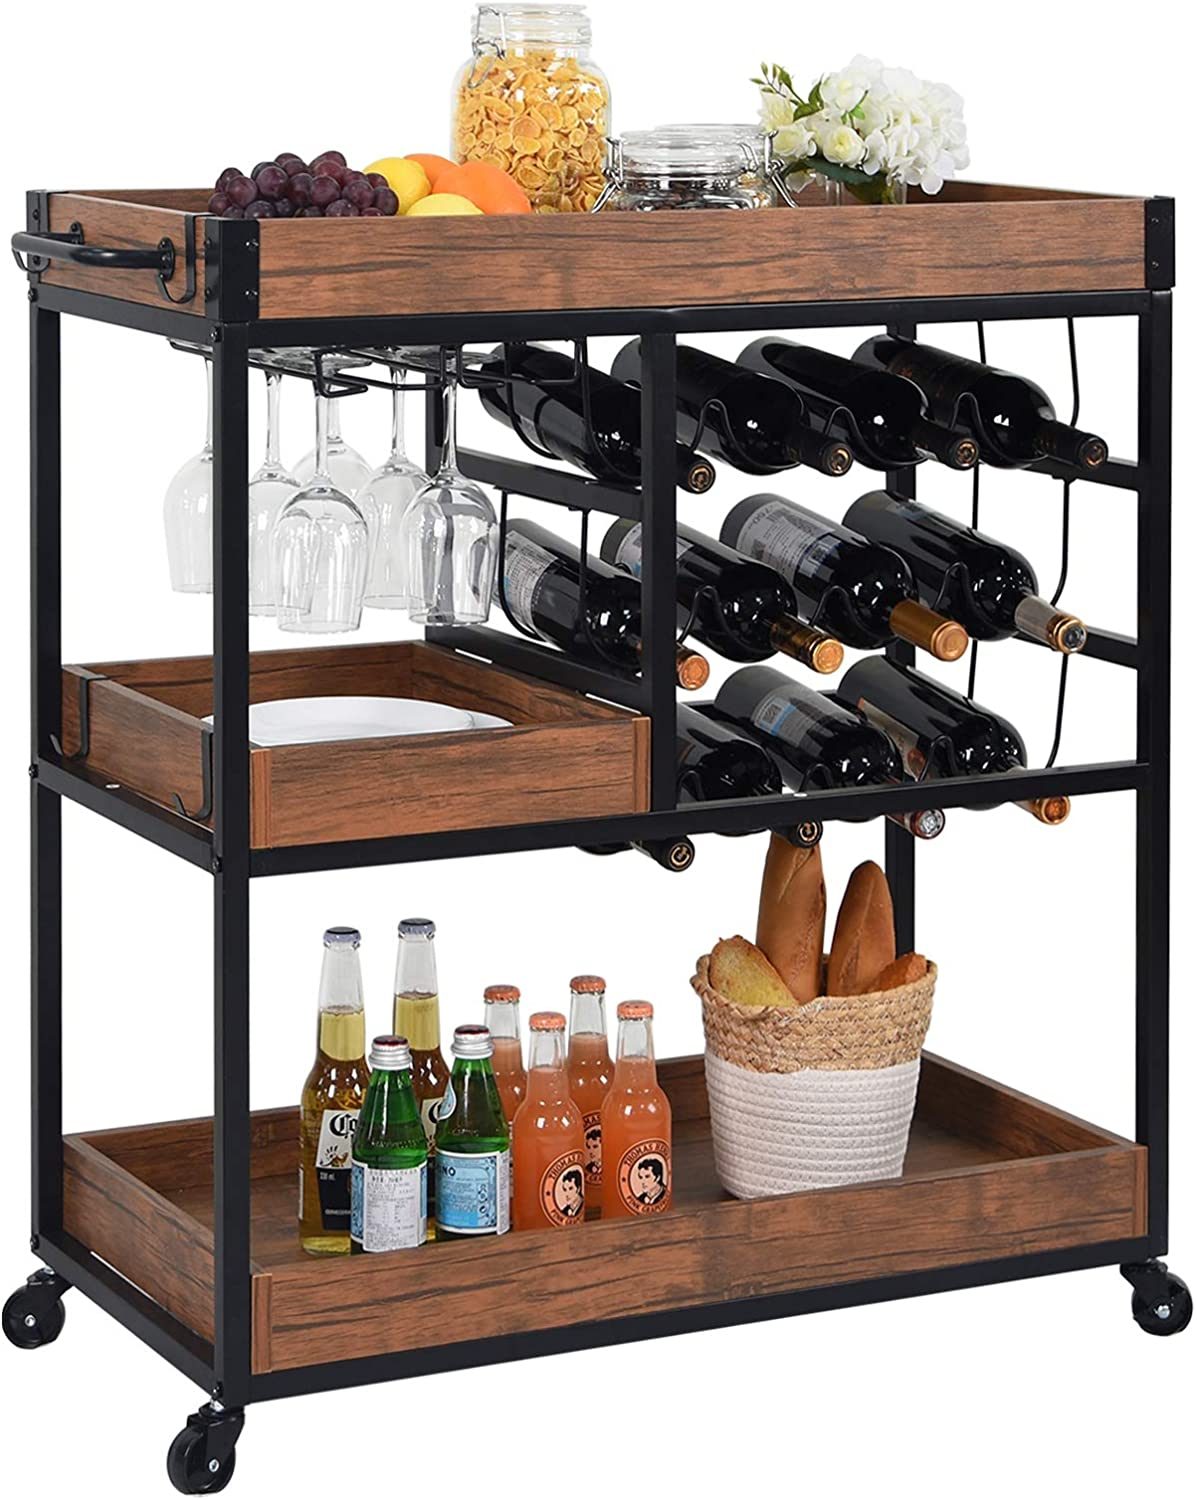 CharaVector Industrial Bar Cart Kitchen Bar&Serving Cart for Home with Wheels 3 -Tier Storage Shelves Portable Wine/Liquor/Tea/Beverage Carts